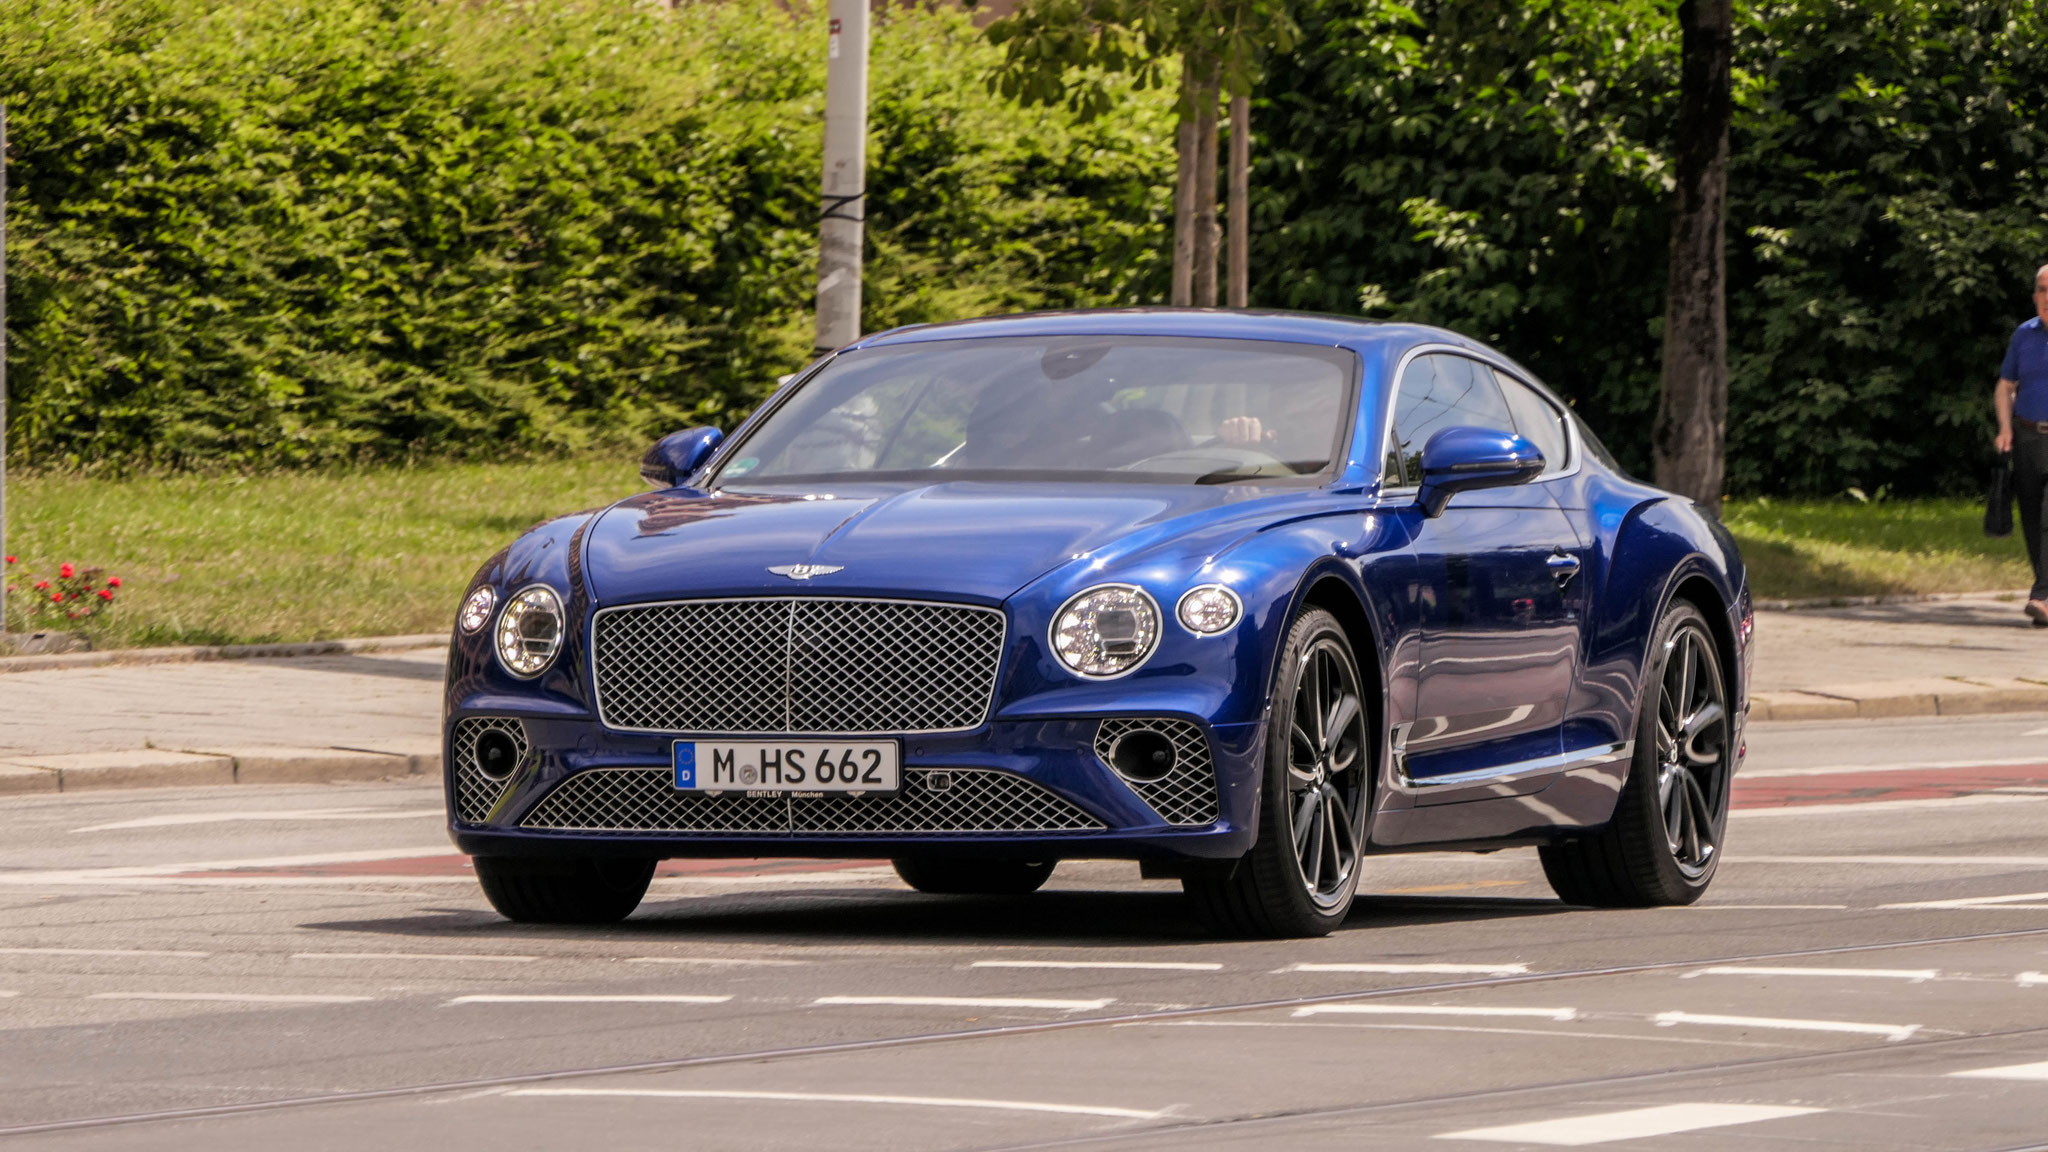 Bentley Continental GT - M-HS-662